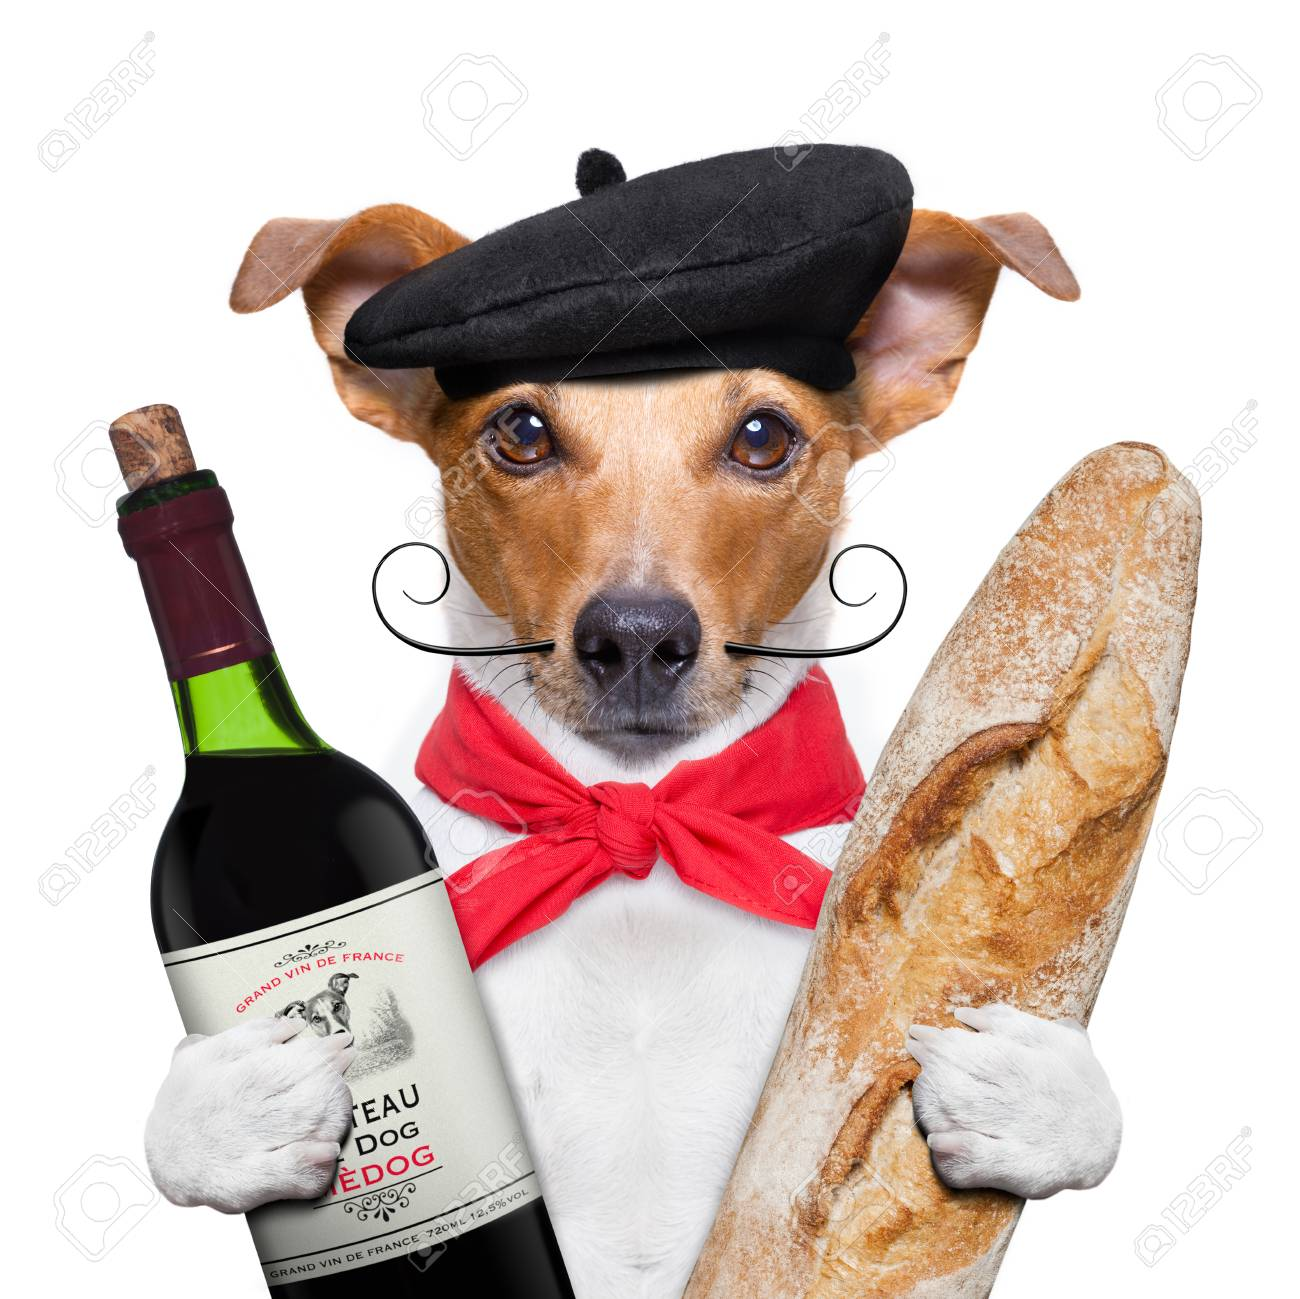 french jack russell dog with red wine baguette and beret, isolated on white background - 99699791